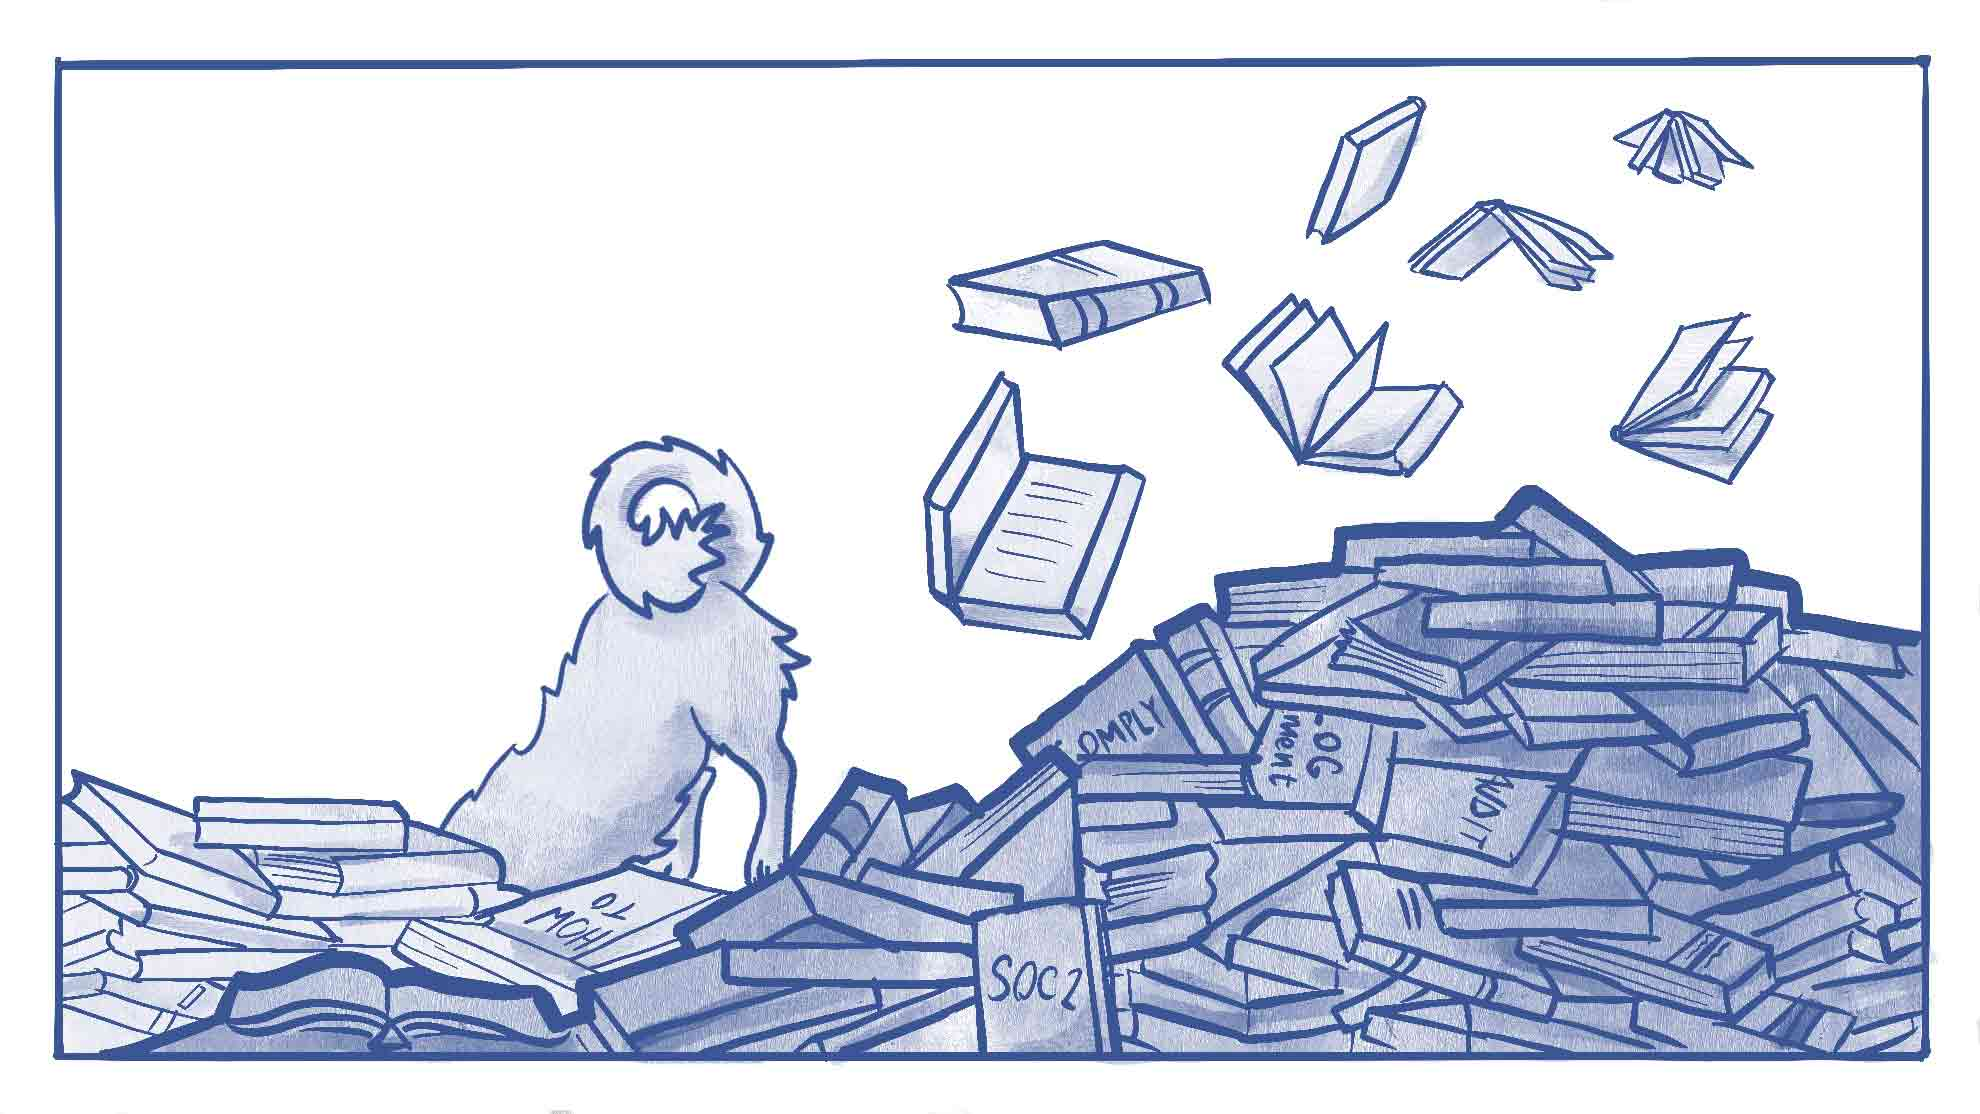 Illustration of a dog digging through a pile of SOC II books (resources)